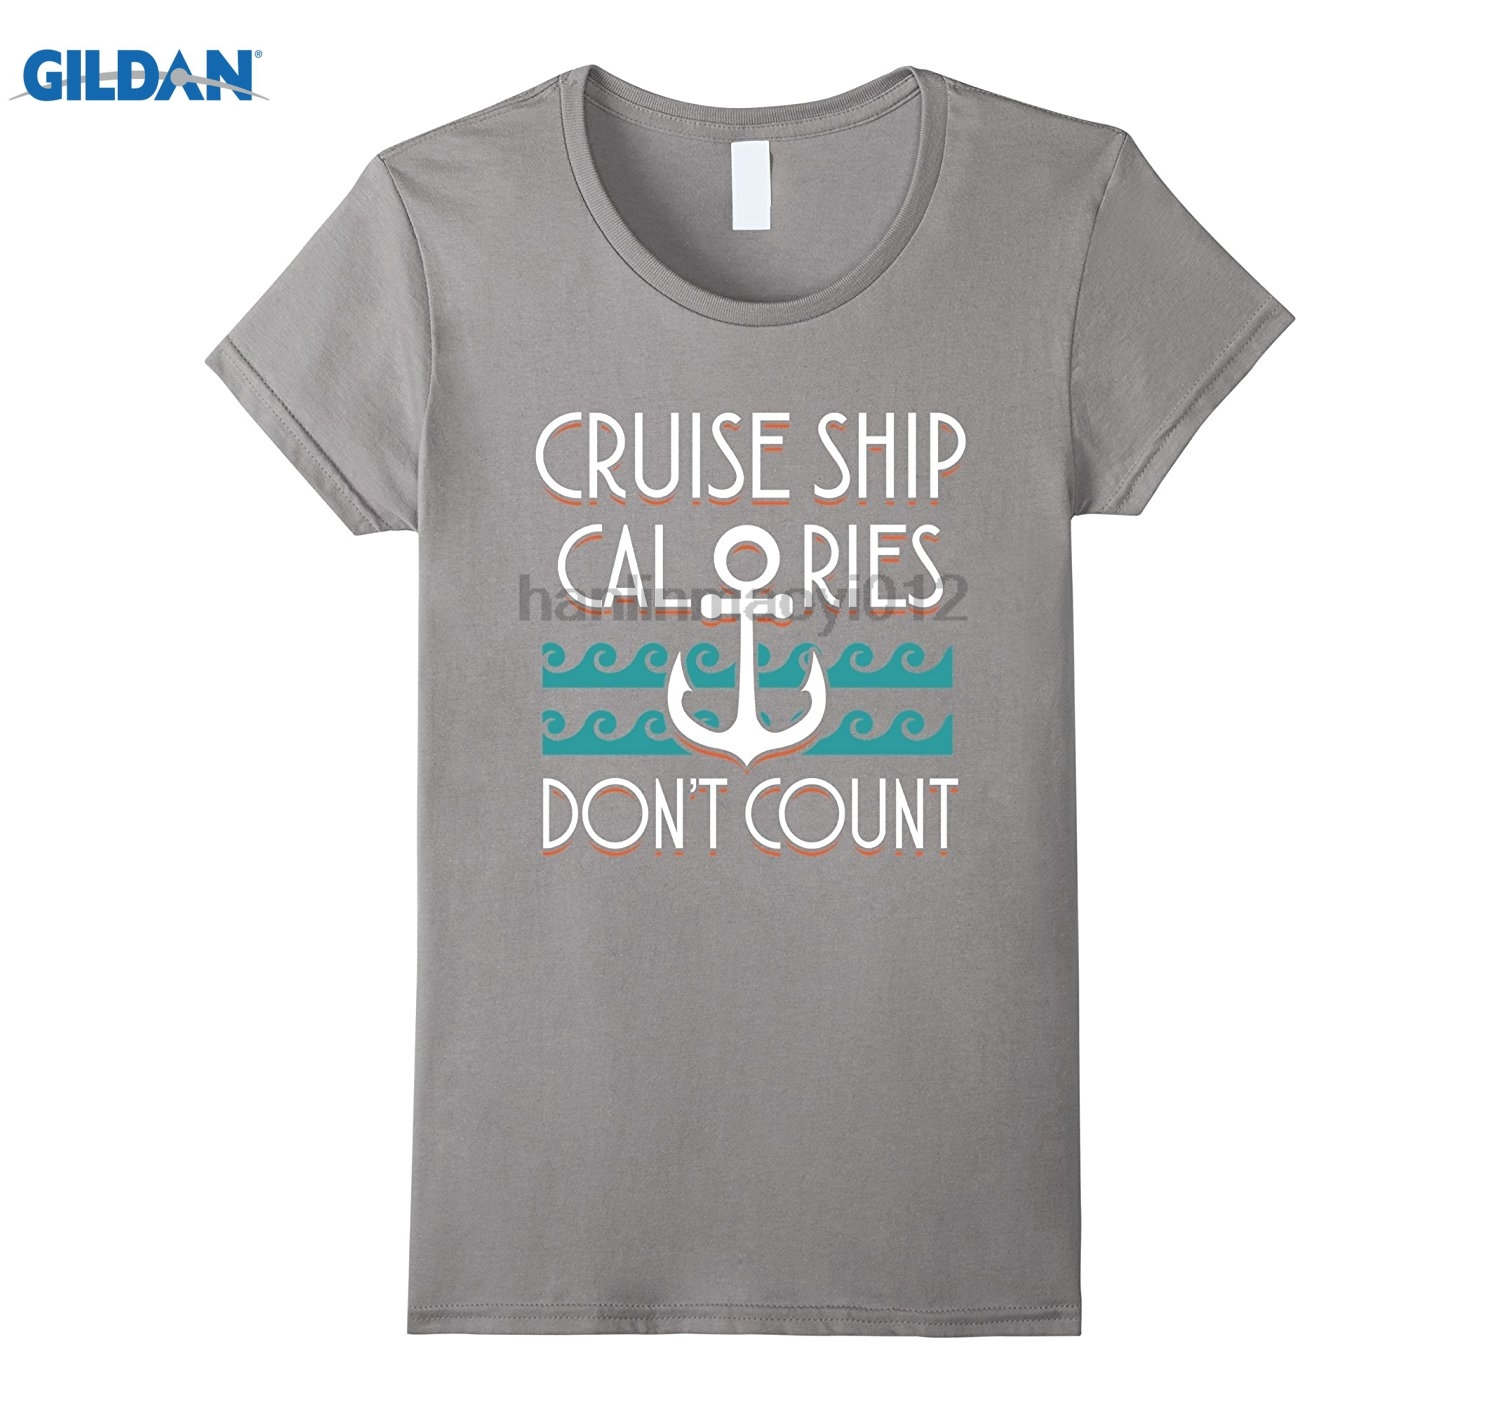 GILDAN Cruise Ship Calories Dont Count Funny T-Shirt Womens T-shirt ...